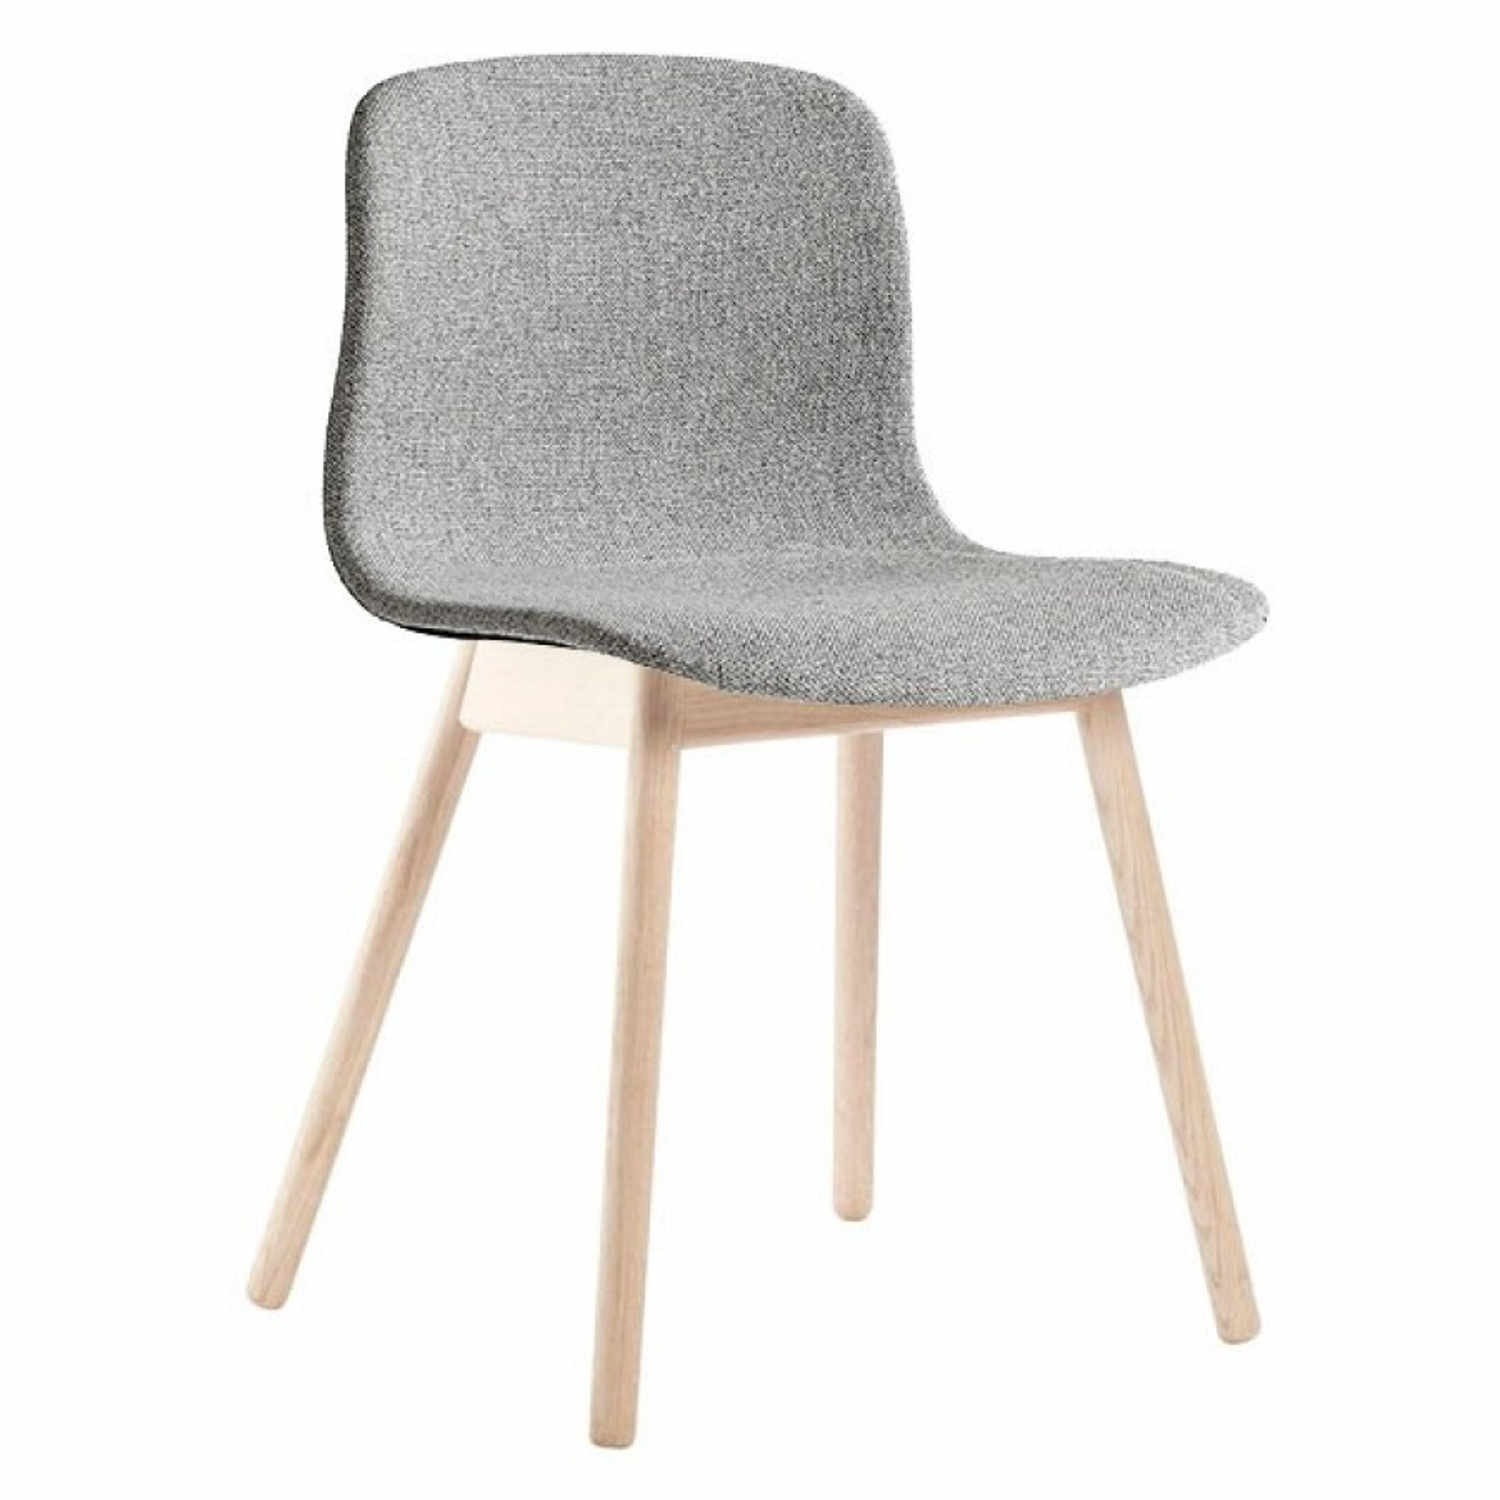 Vitra Stuhl Eiche Hay About A Chair Aac13 Stuhl Bruno Wickart Ch